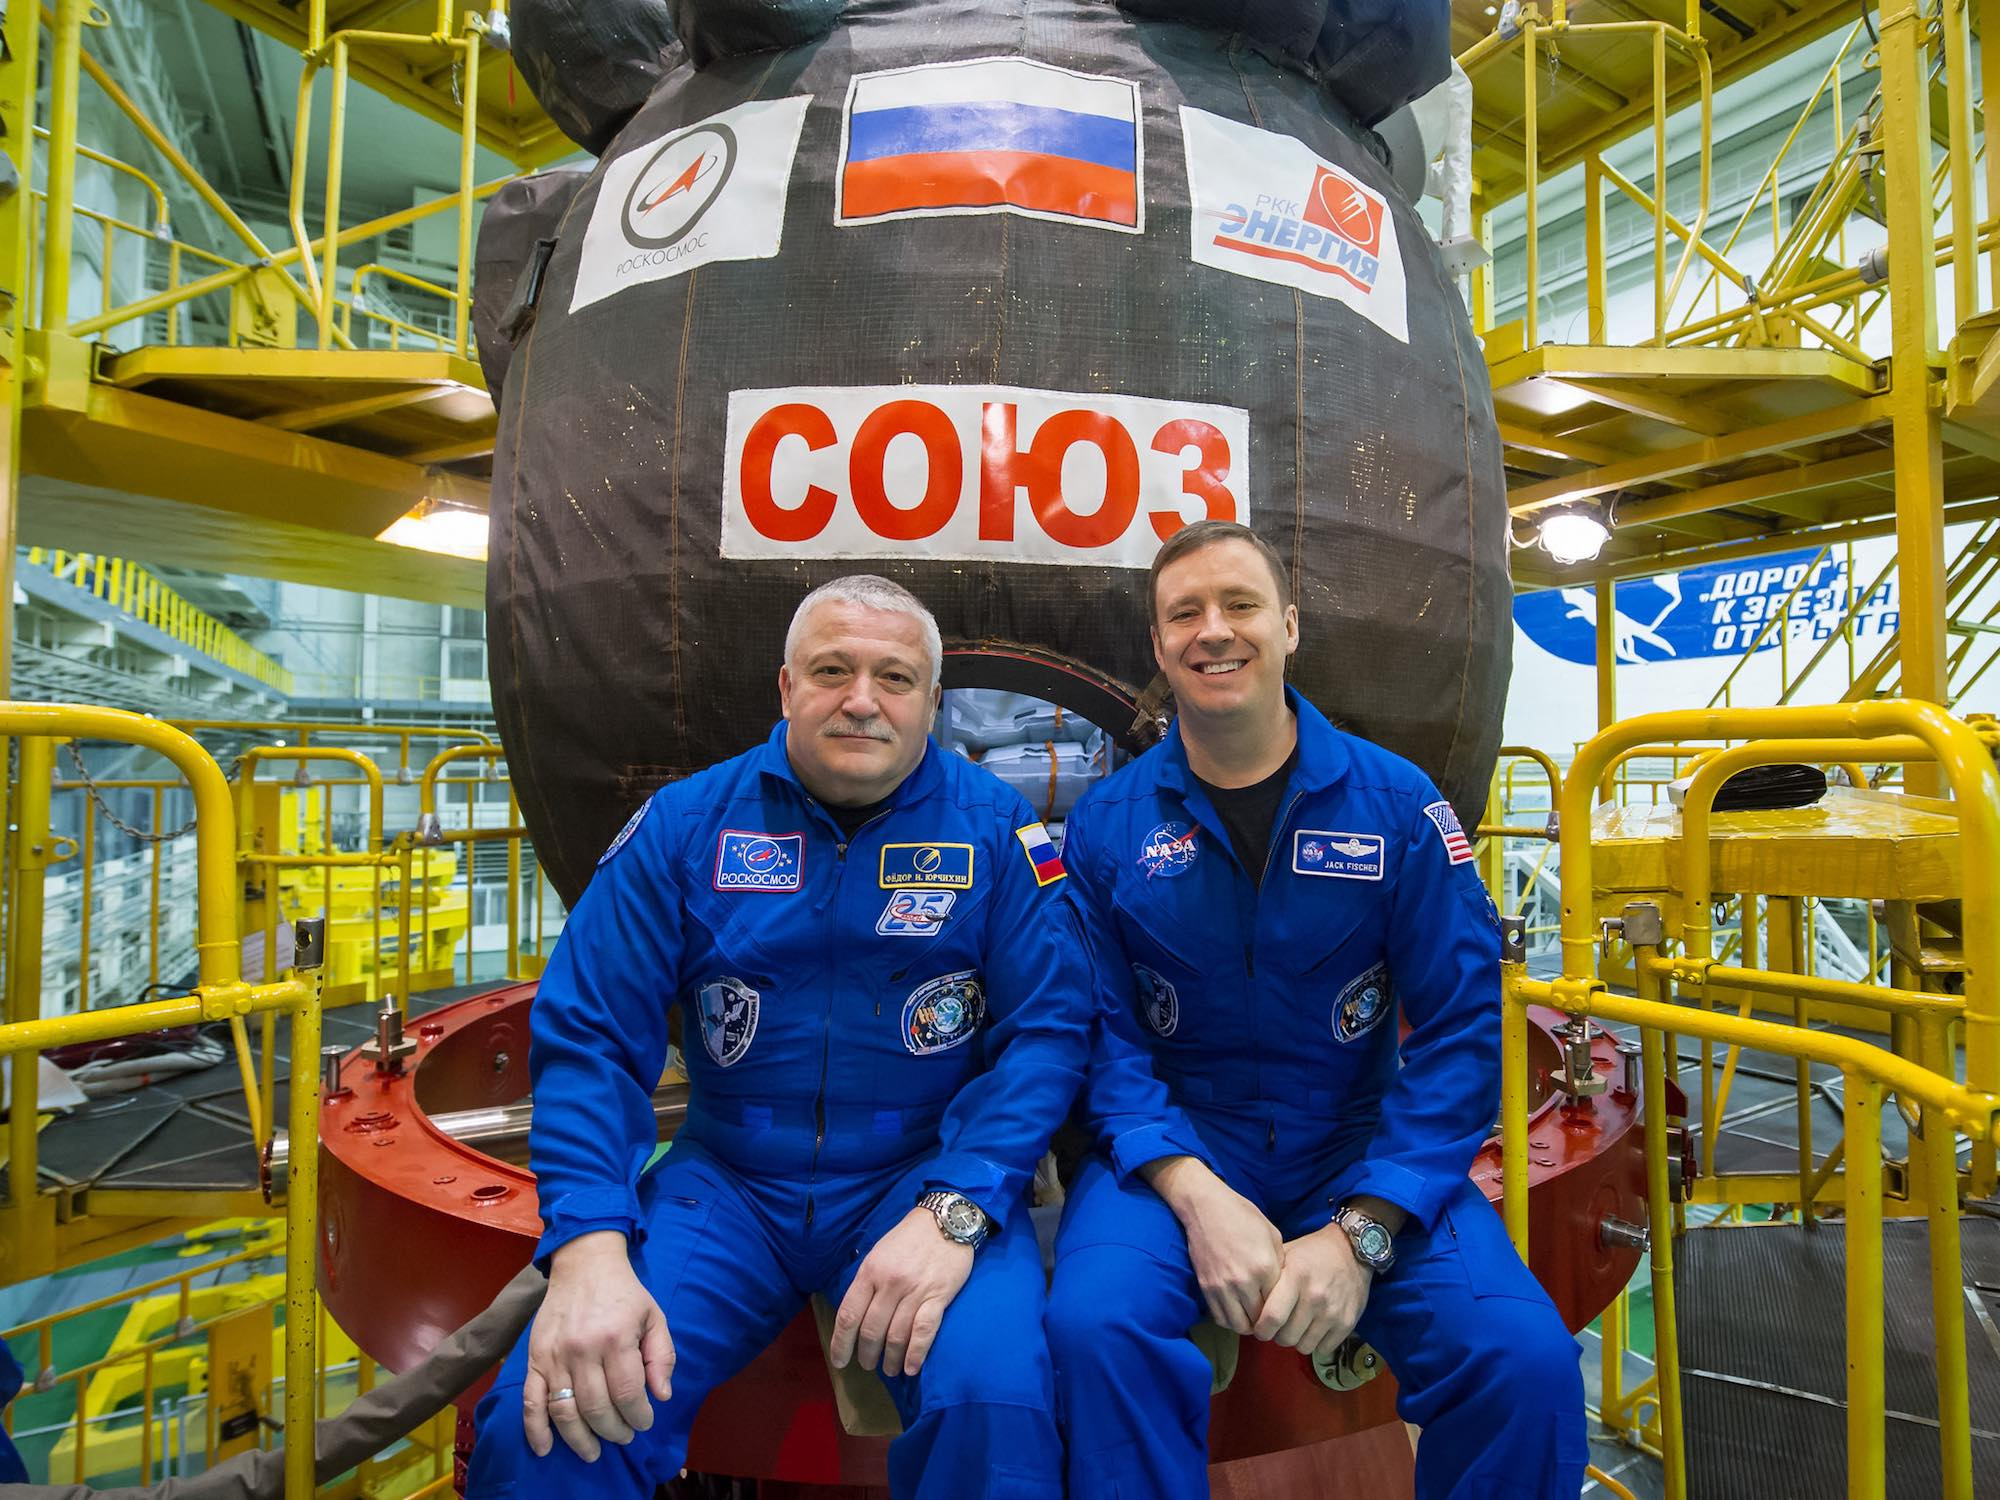 In Baikonur, Fyodor Yurchikhin (left) and Jack Fischer stand in front of Soyuz MS-04 which will take them to the ISS on 20 April. Image credit: NASA/Gagarin Cosmonaut Training Center/Andrey Shelepin